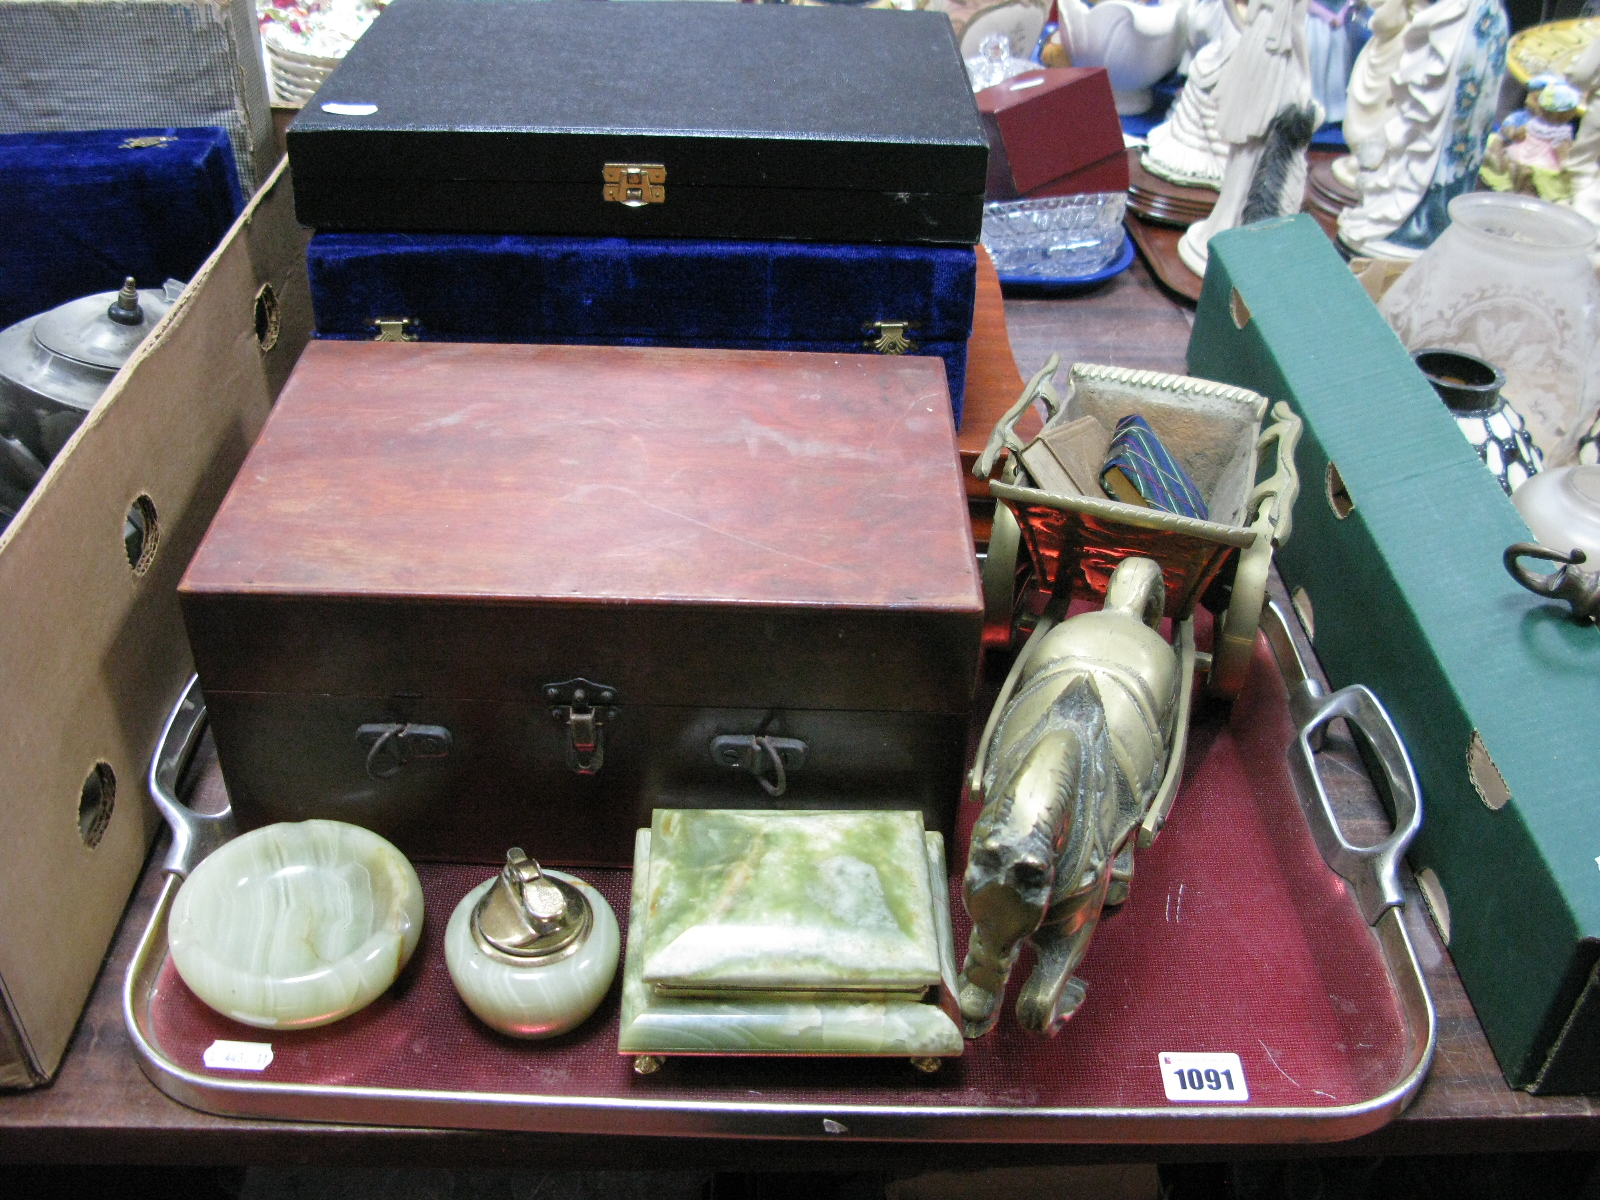 Lot 1091 - Thimbles, cottons, etc. in box, onyx smokers items, brass horse and cart, books:- One Tray